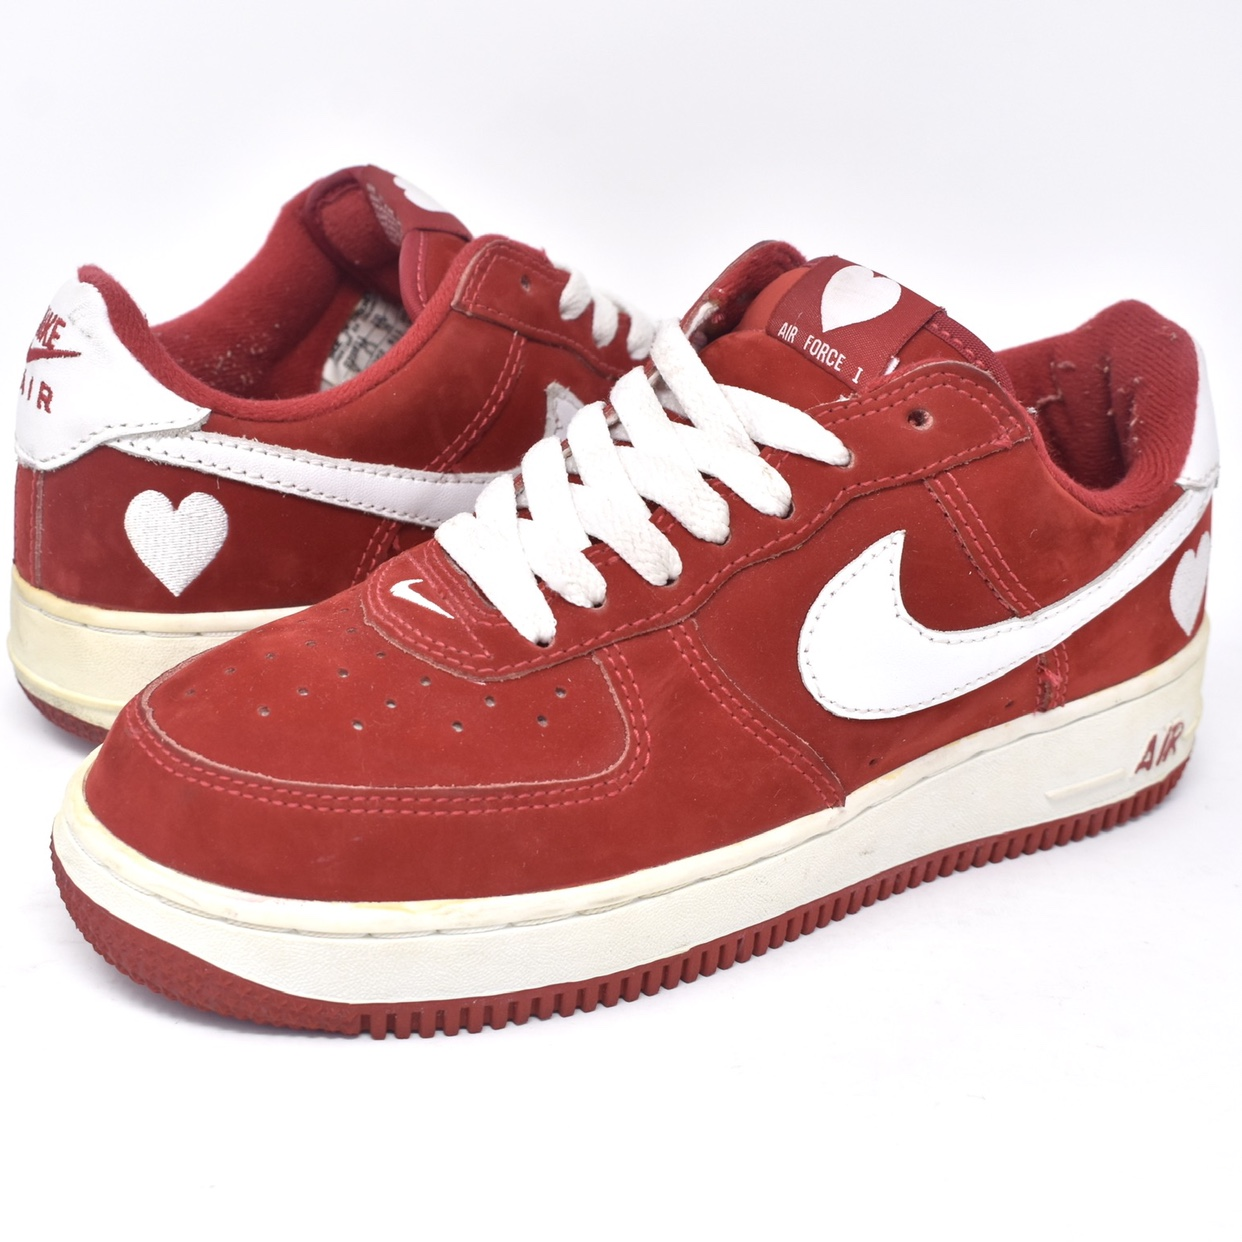 "taille 40 d11ab c4937 Very rare 2003 Nike Air Force 1 low ""Valentines Day""... - Depop"